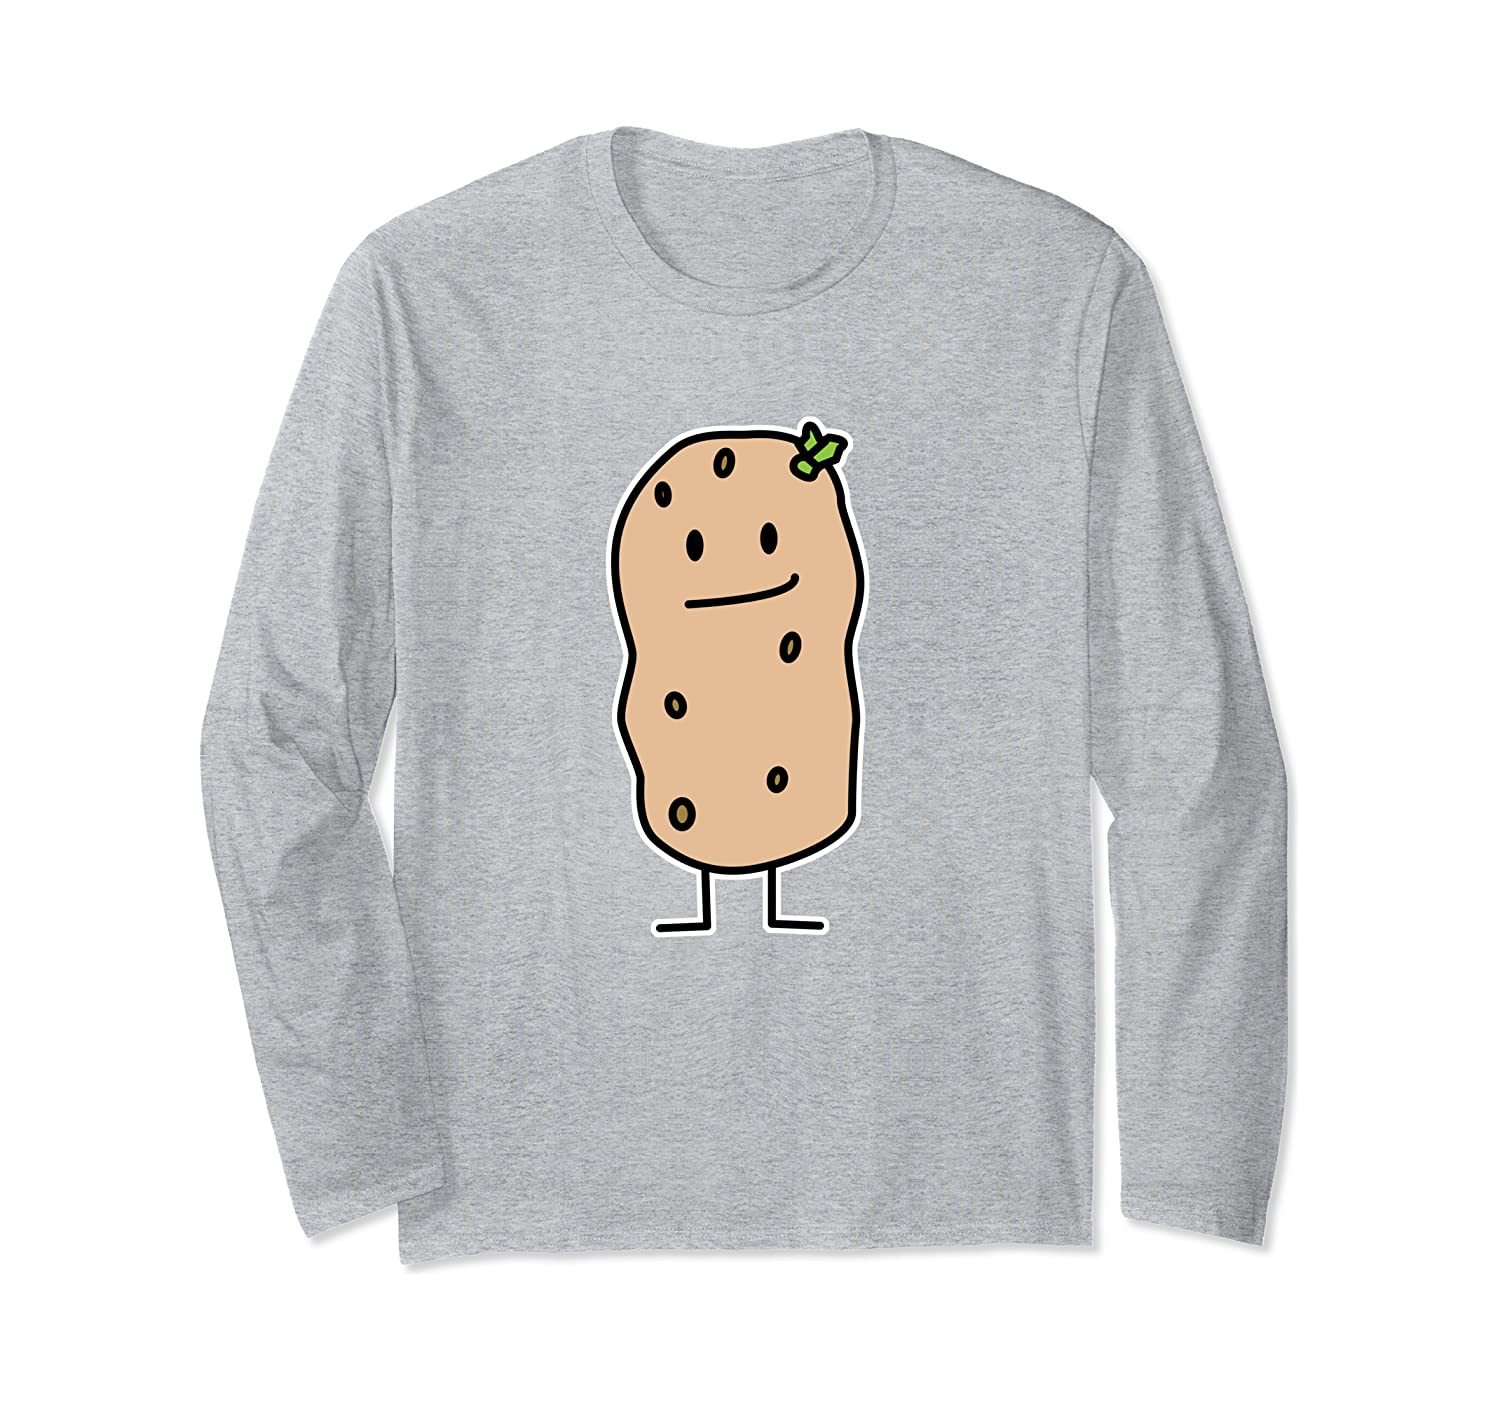 Happy Potato sprout carb tater root vegetable starch Long Sleeve T-Shirt